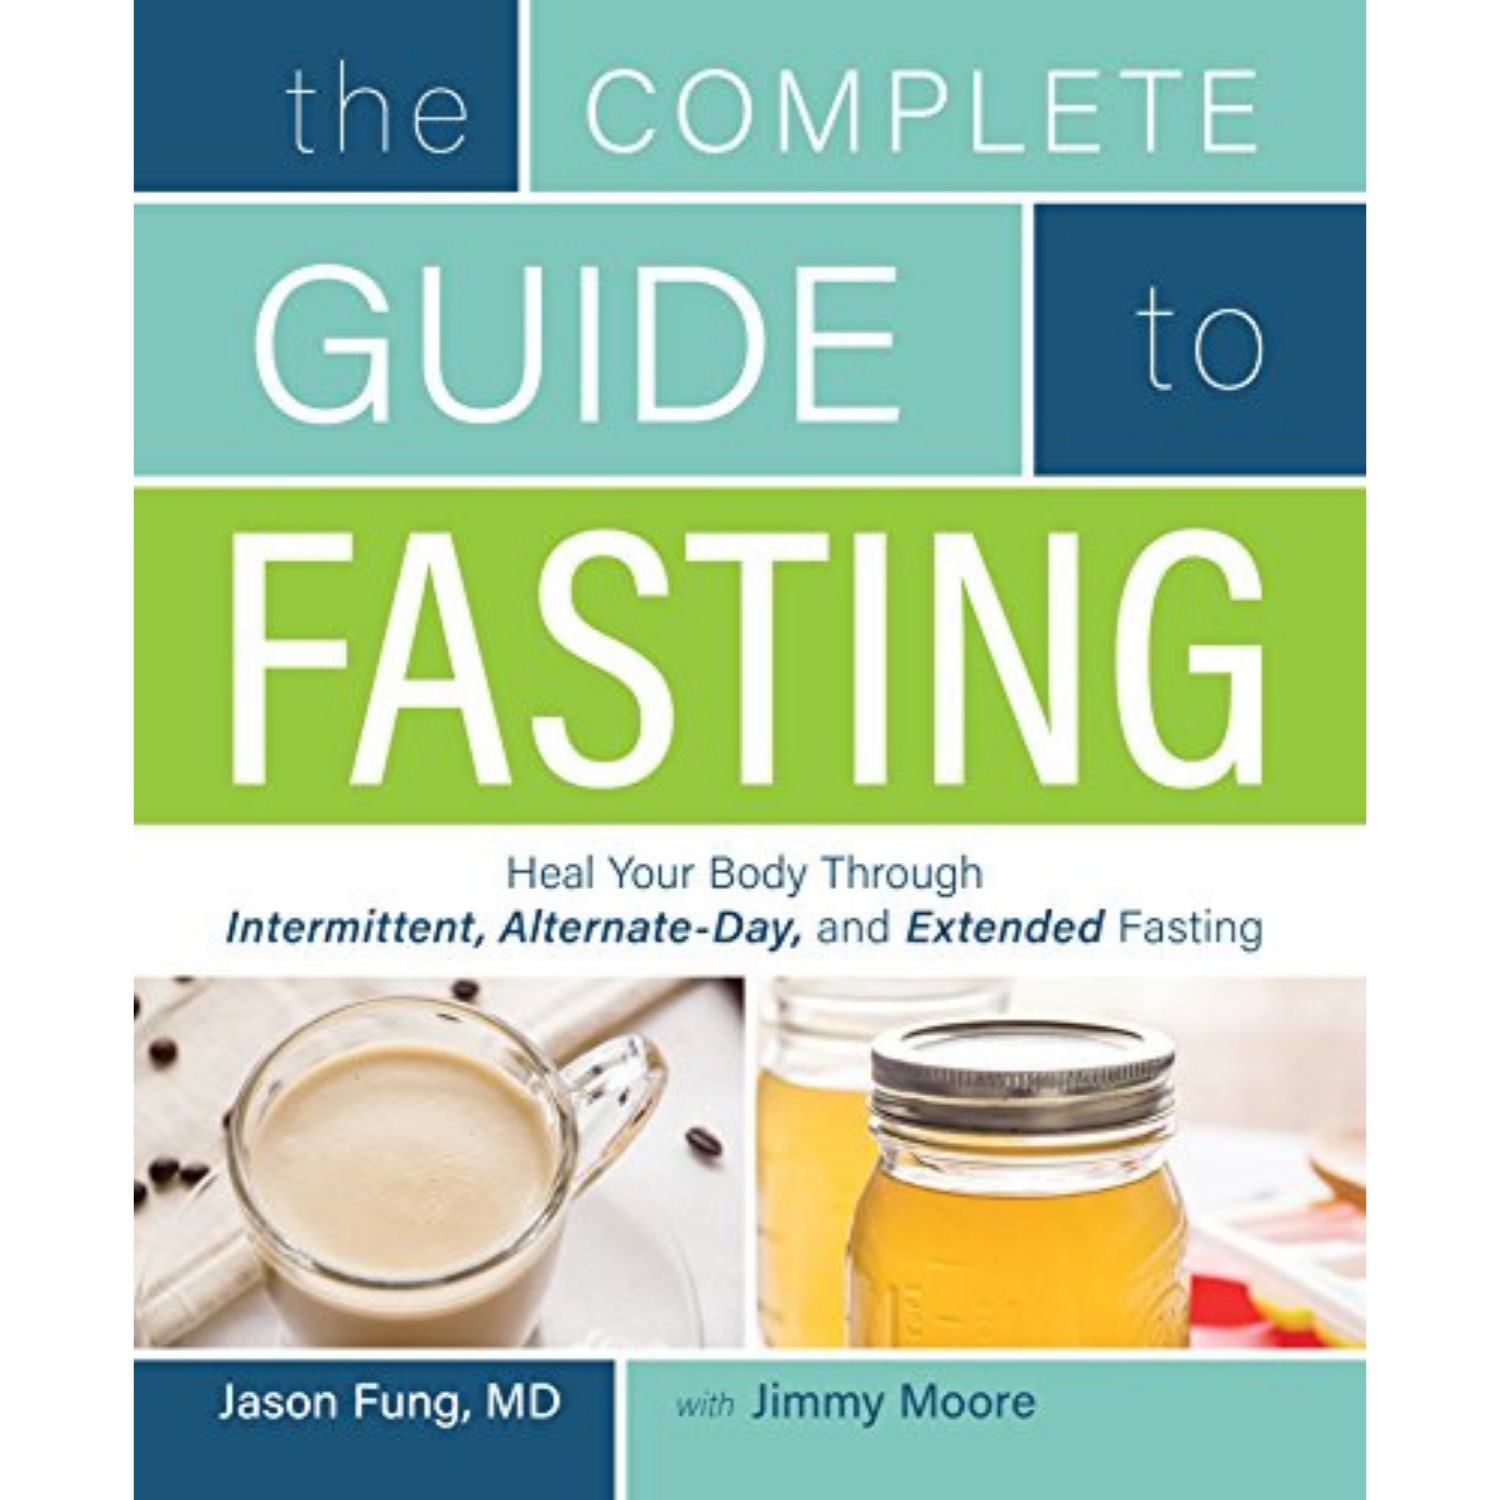 The Complete Guide to Fasting (Jason Fung, MD)